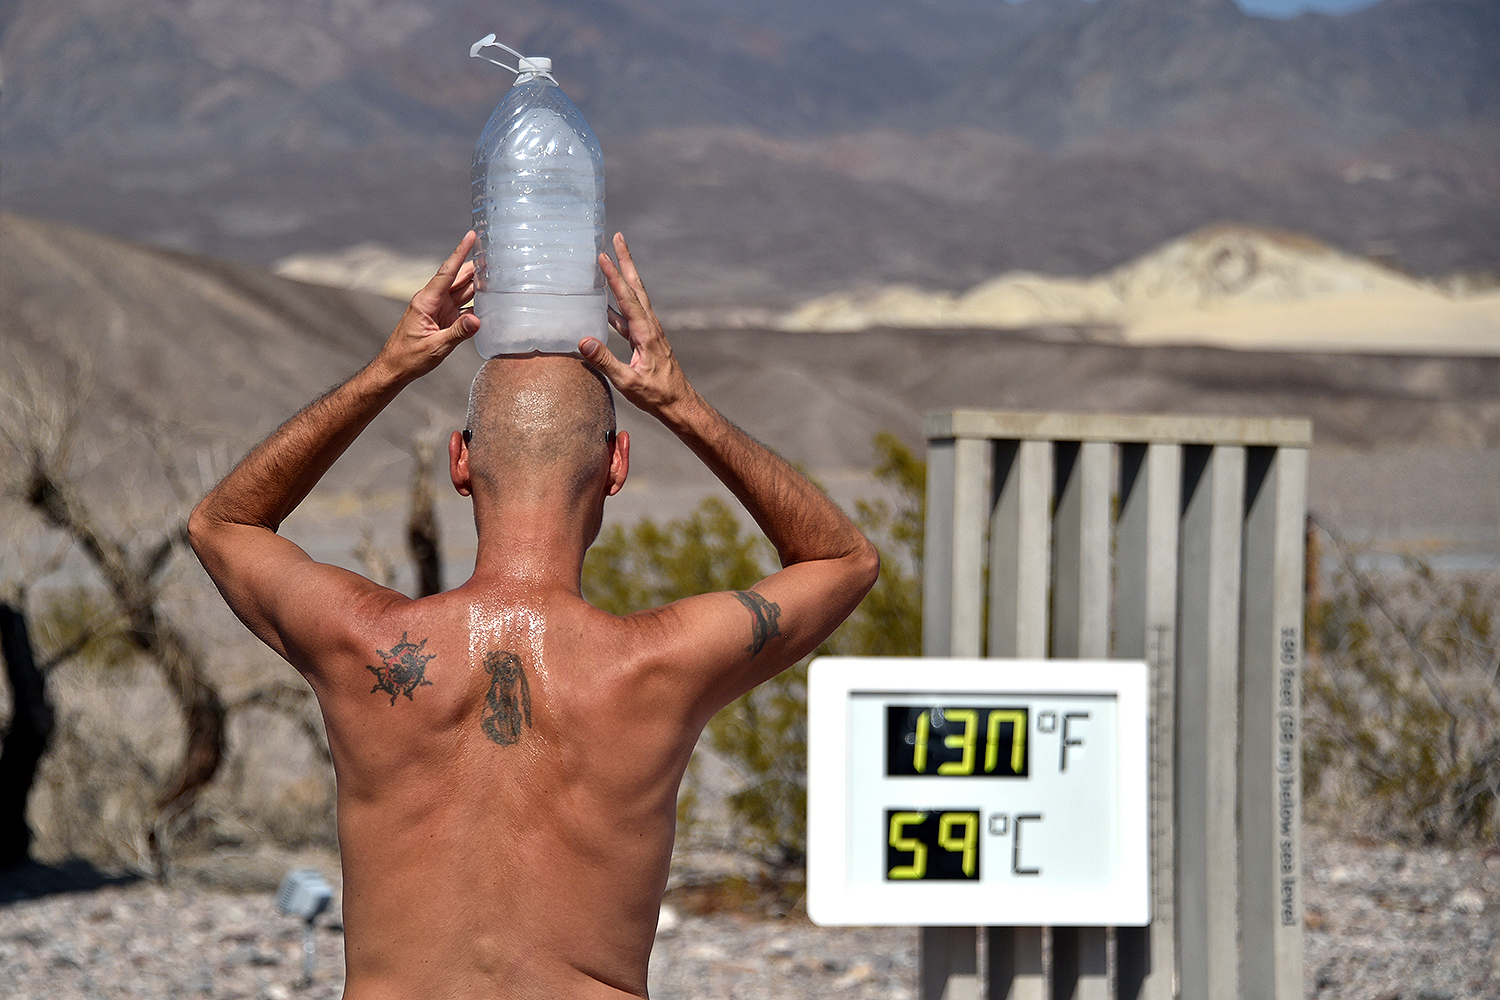 Steve Krofchik of Las Vegas keeps cool with a bottle of ice on his head as the thermometer reads 130 degrees Fahrenheit at the Furnace Creek Visitors Center in Death Valley, California, on Aug. 17. David Becker/REUTERS